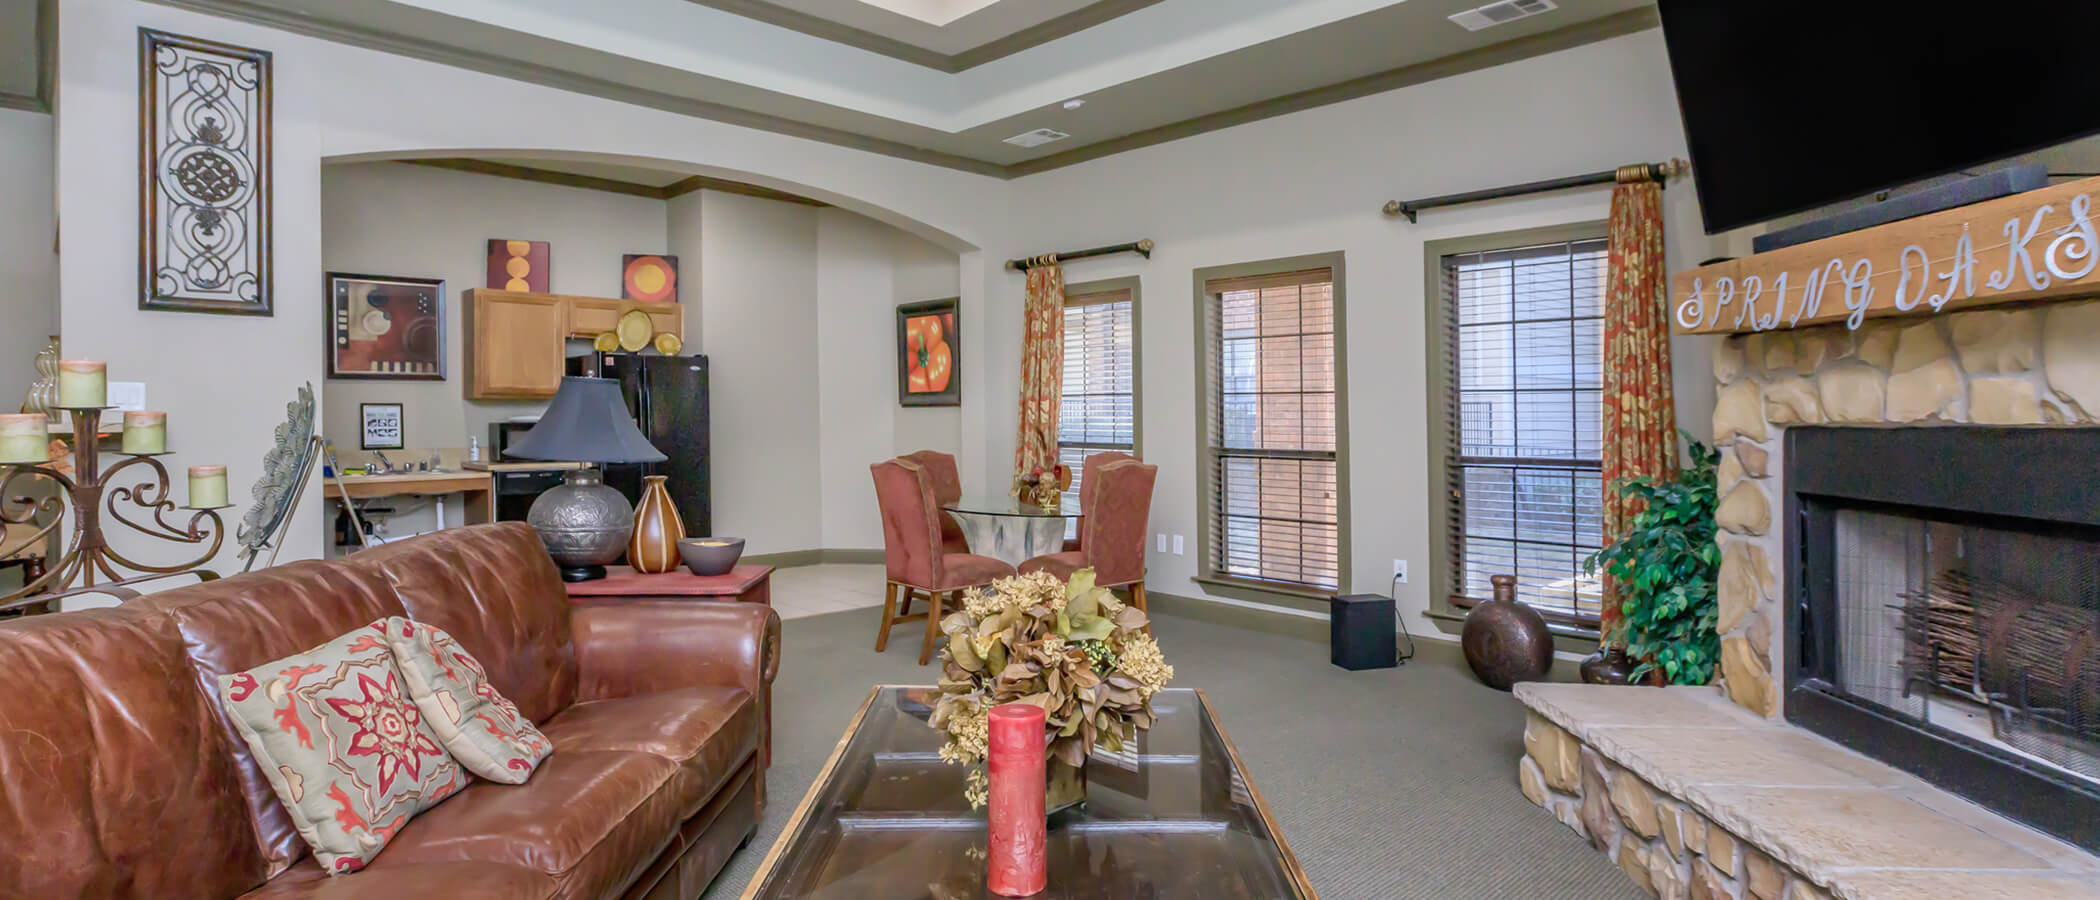 Spring Oaks Apartments slideshow image 3